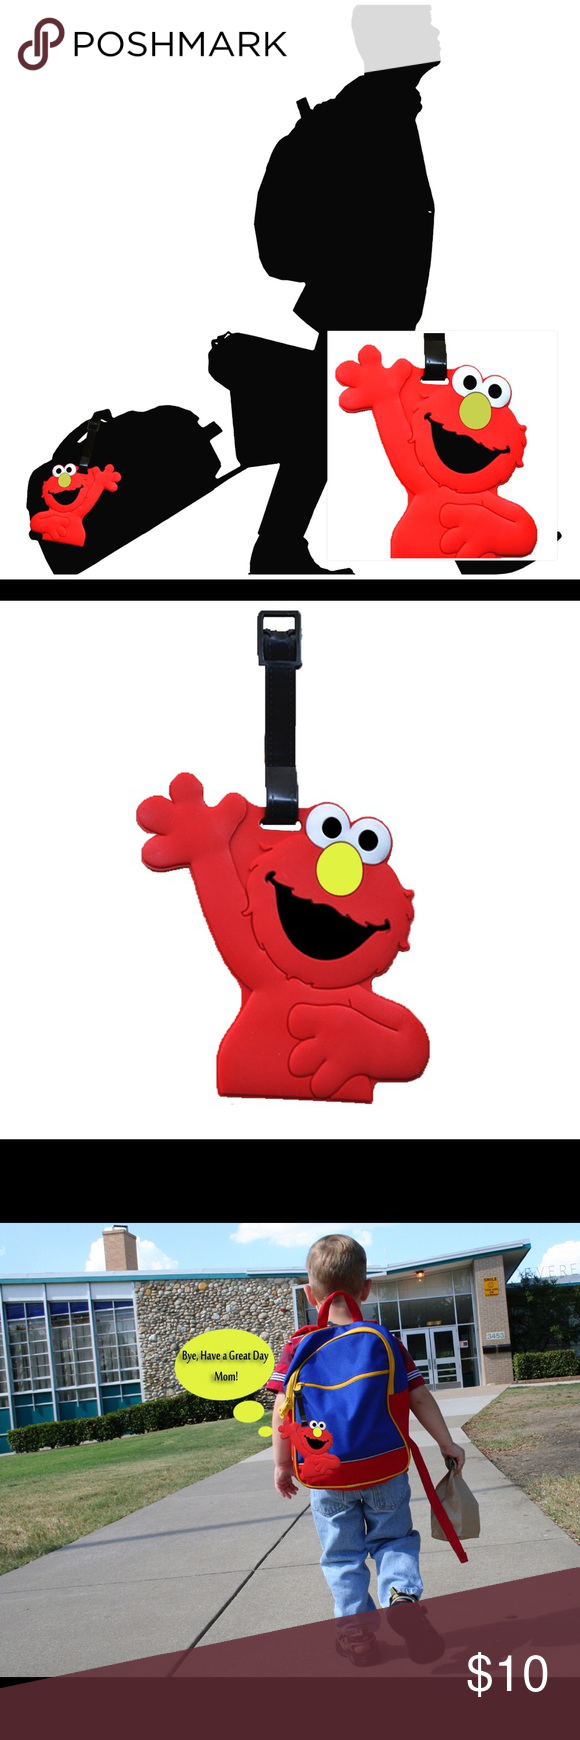 Sesame Street Elmo Luggage Tag Boutique Streets And Pikachu Travel Baggage Back To School Must Have This Is More Than Just A Tags It Shows Your